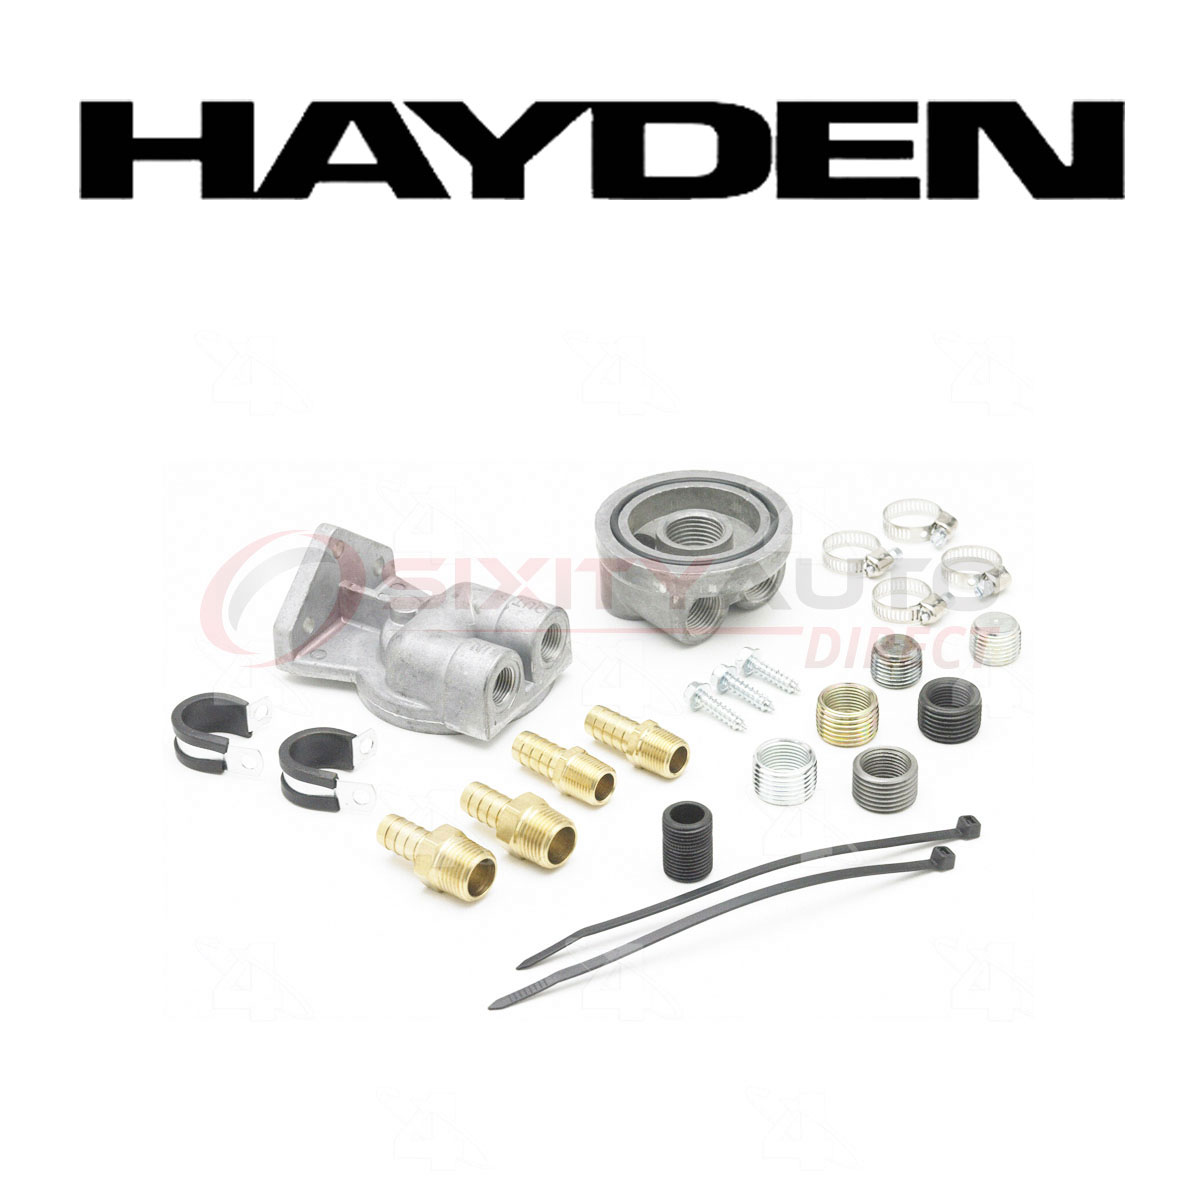 Hayden Oil Filter Remote Mounting Kit for 1986-2015 Ford F